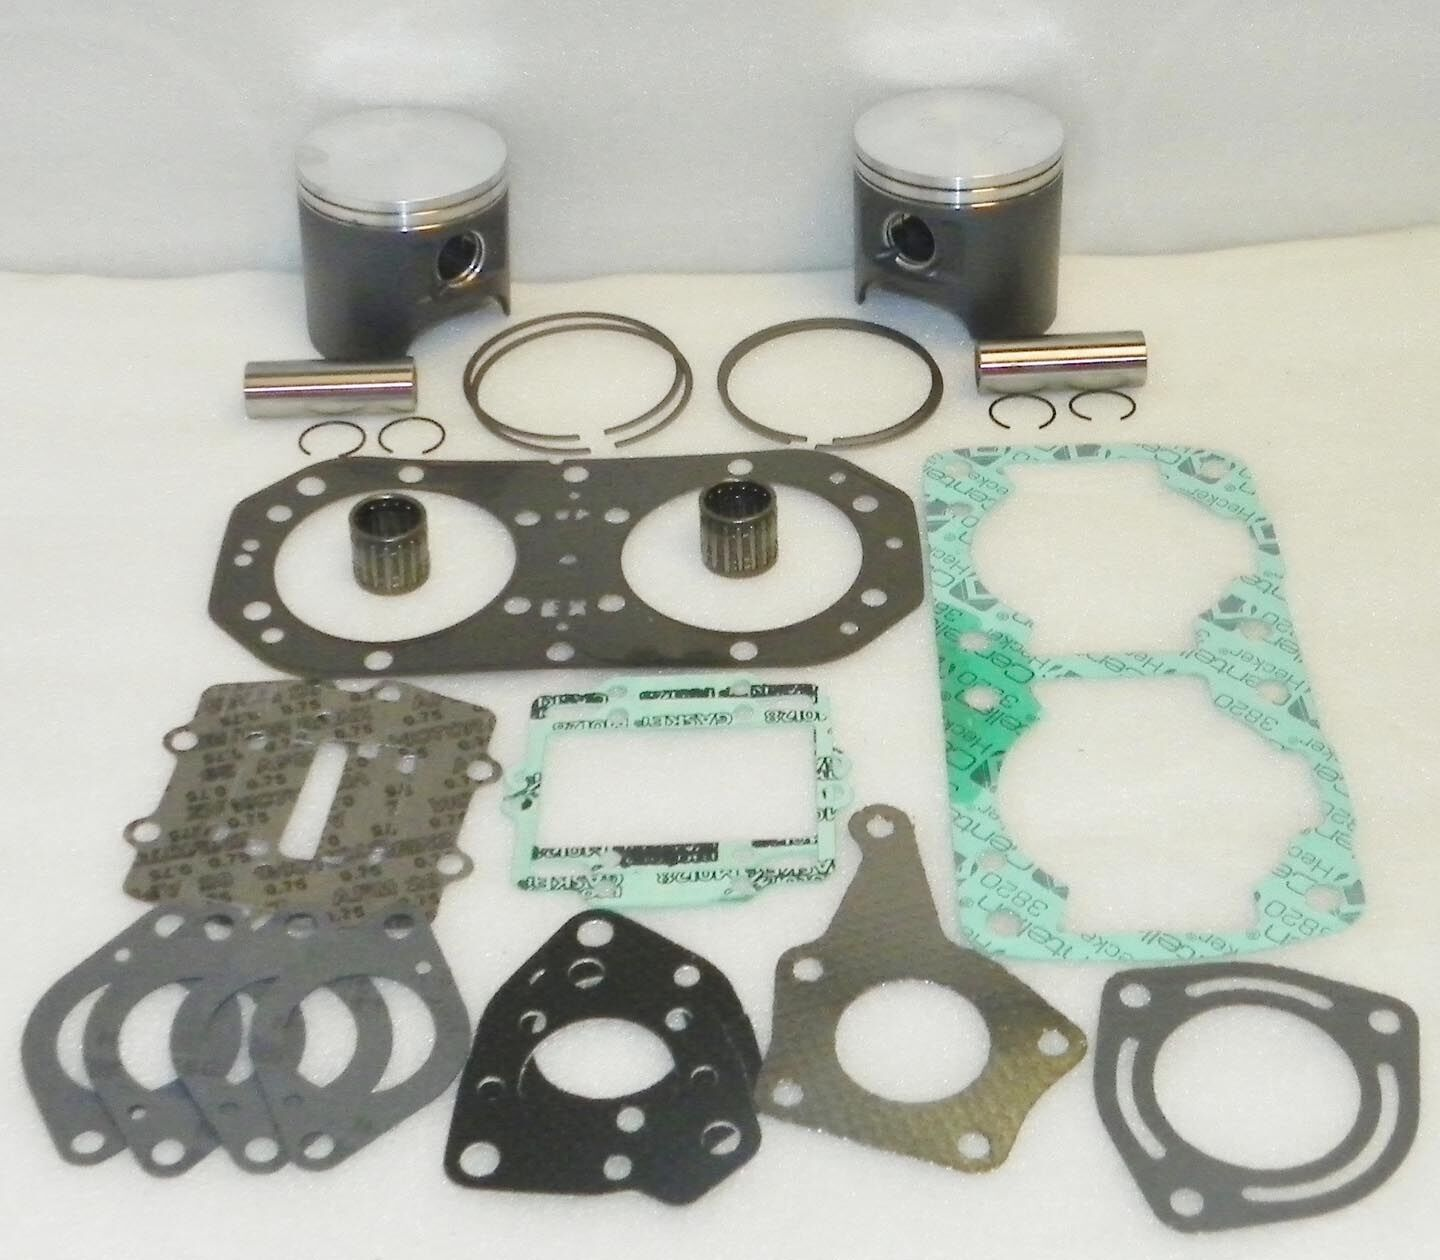 Top End Rebuild Set Std Kawasaki 800 Sx-R Wsm Platinum 010-843-10P Wsm 010-843-1